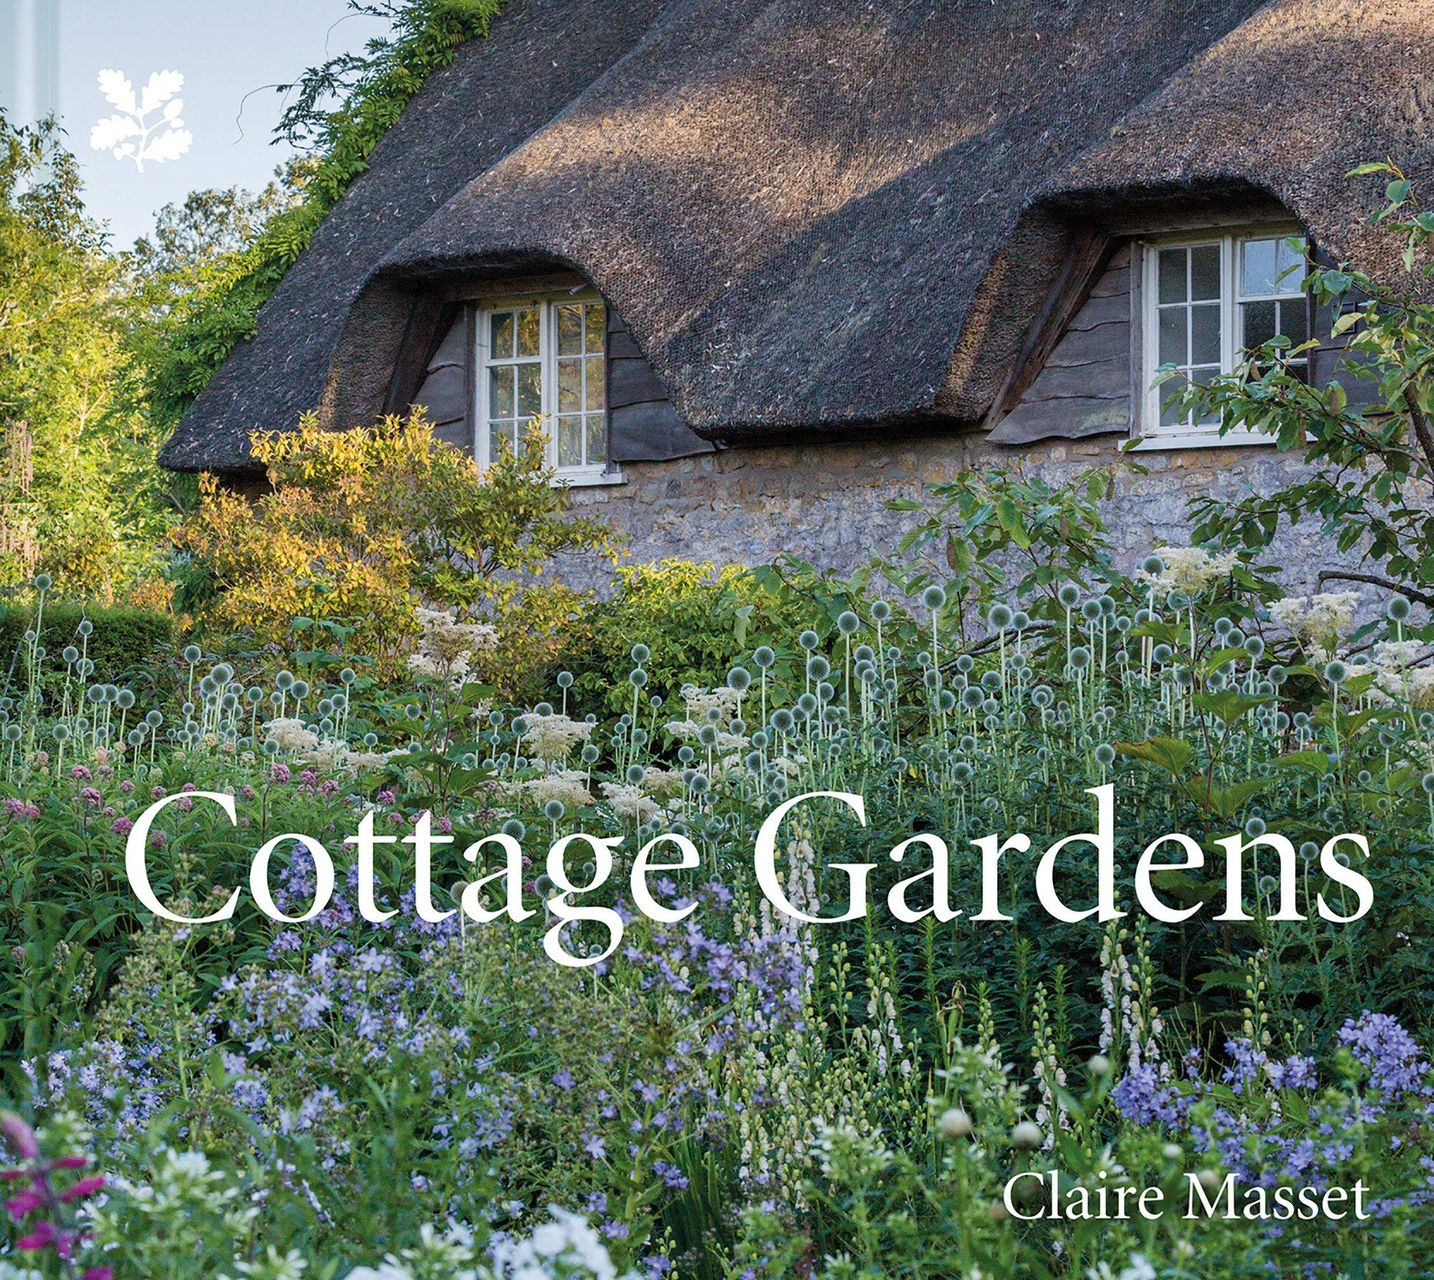 Cottage Gardens by Claire Masset